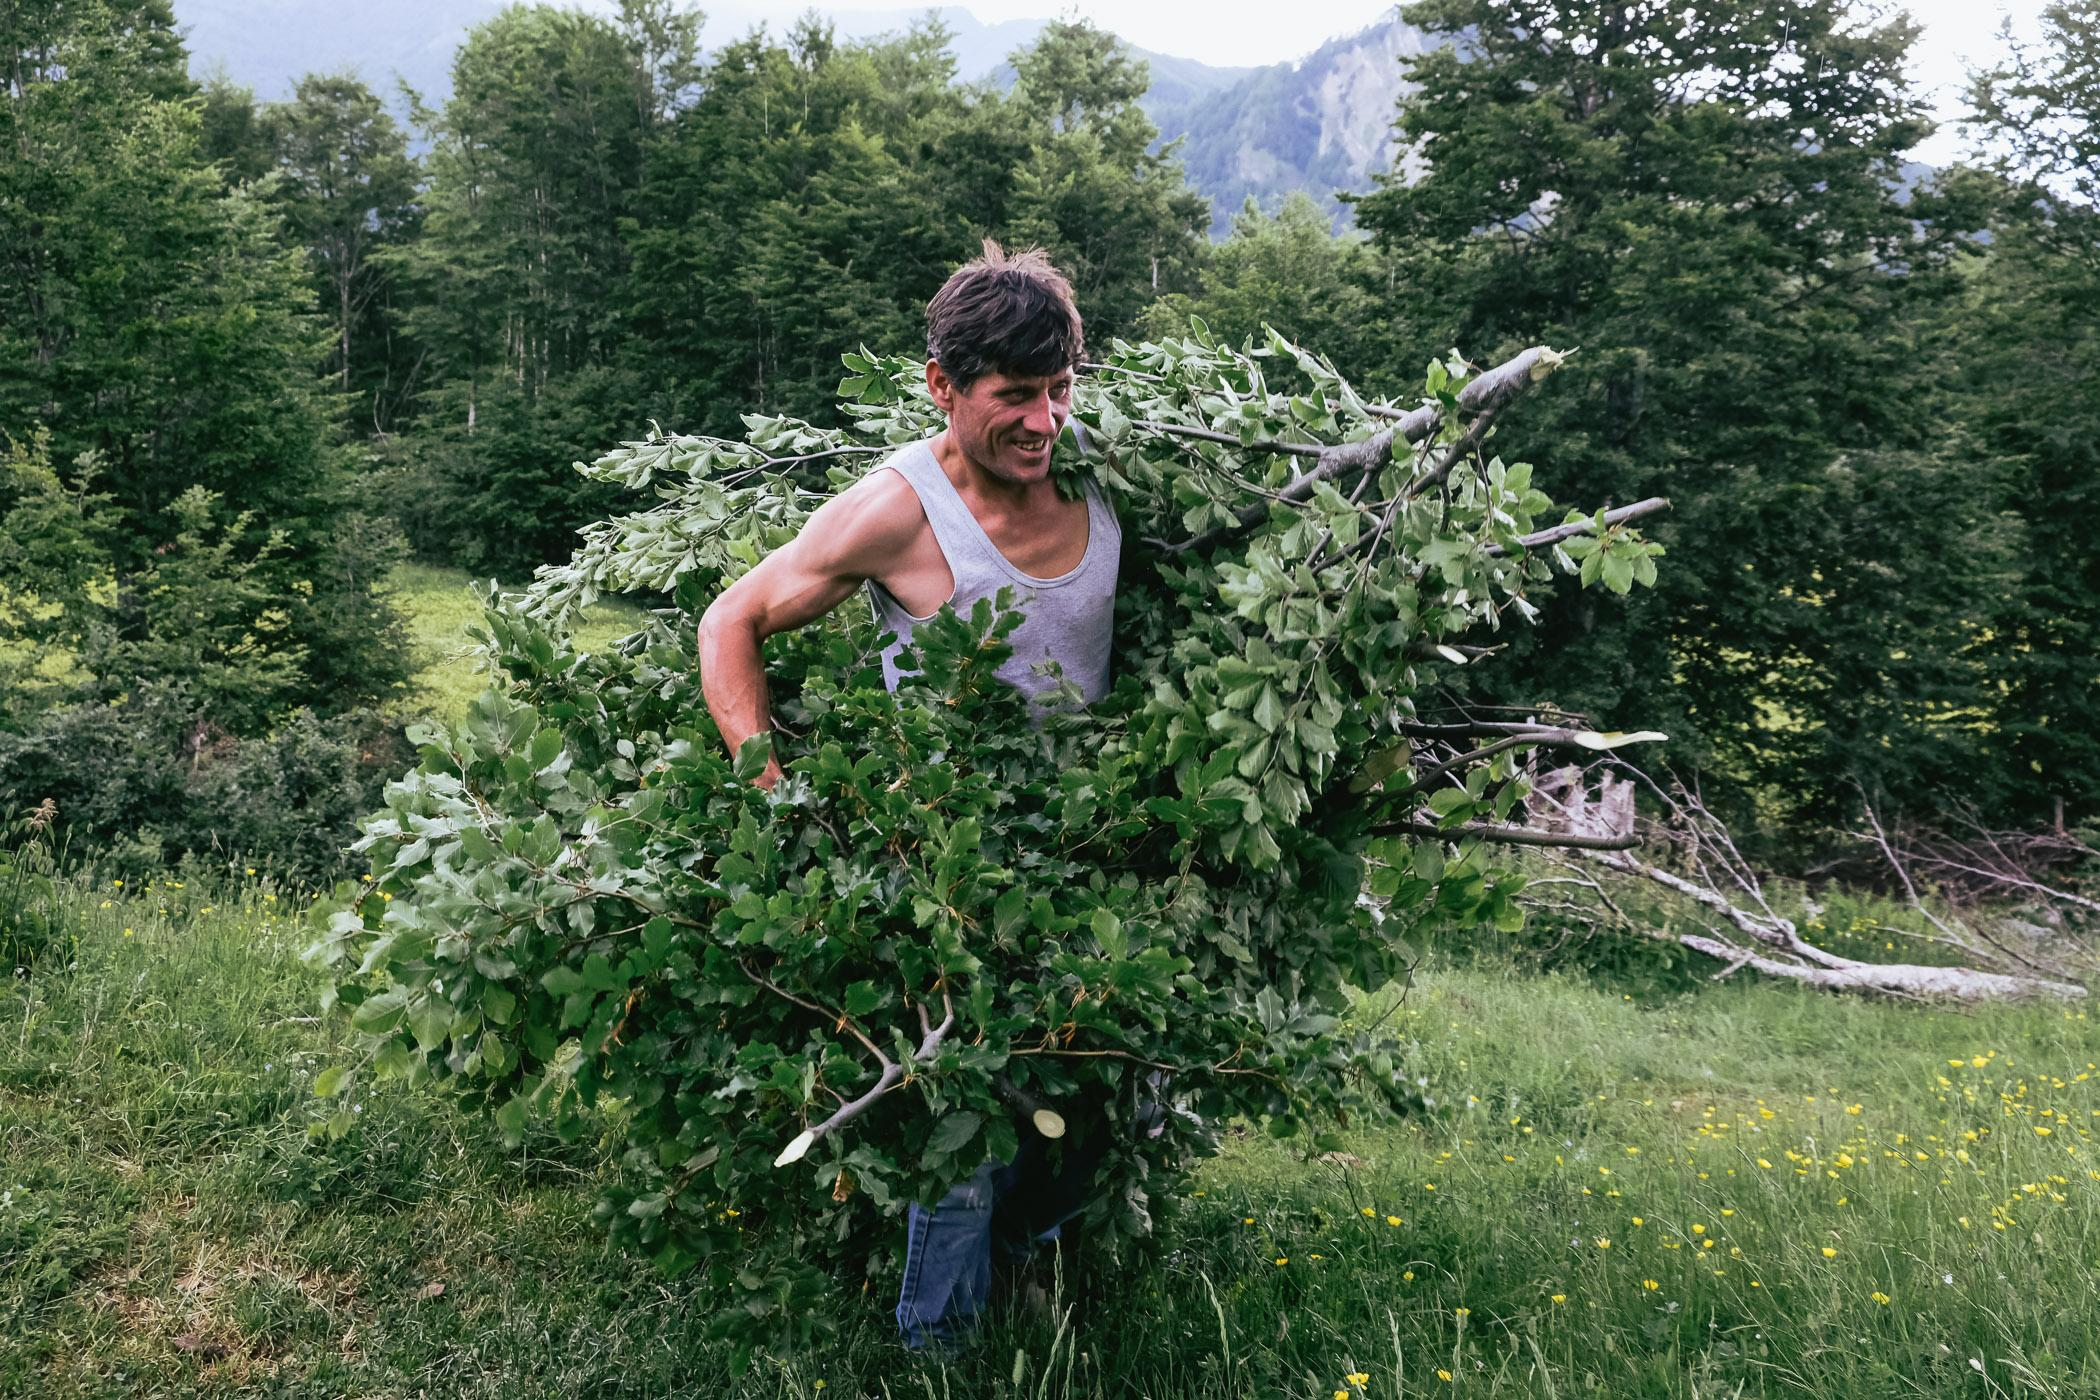 Gazmend Bikaj collects brush from the surrounding forest to construct a roof over a livestock enclosure in Koprisht, Kelmend region, Albania. Gazmend is a shepherd from Kalsa, a hamlet some 30km away, where he lives with his family most of the year. During the summer months they migrate to an encampment in the high pastures of Koprisht, taking a flock of sheep that belong to a farmer from the lowlands.